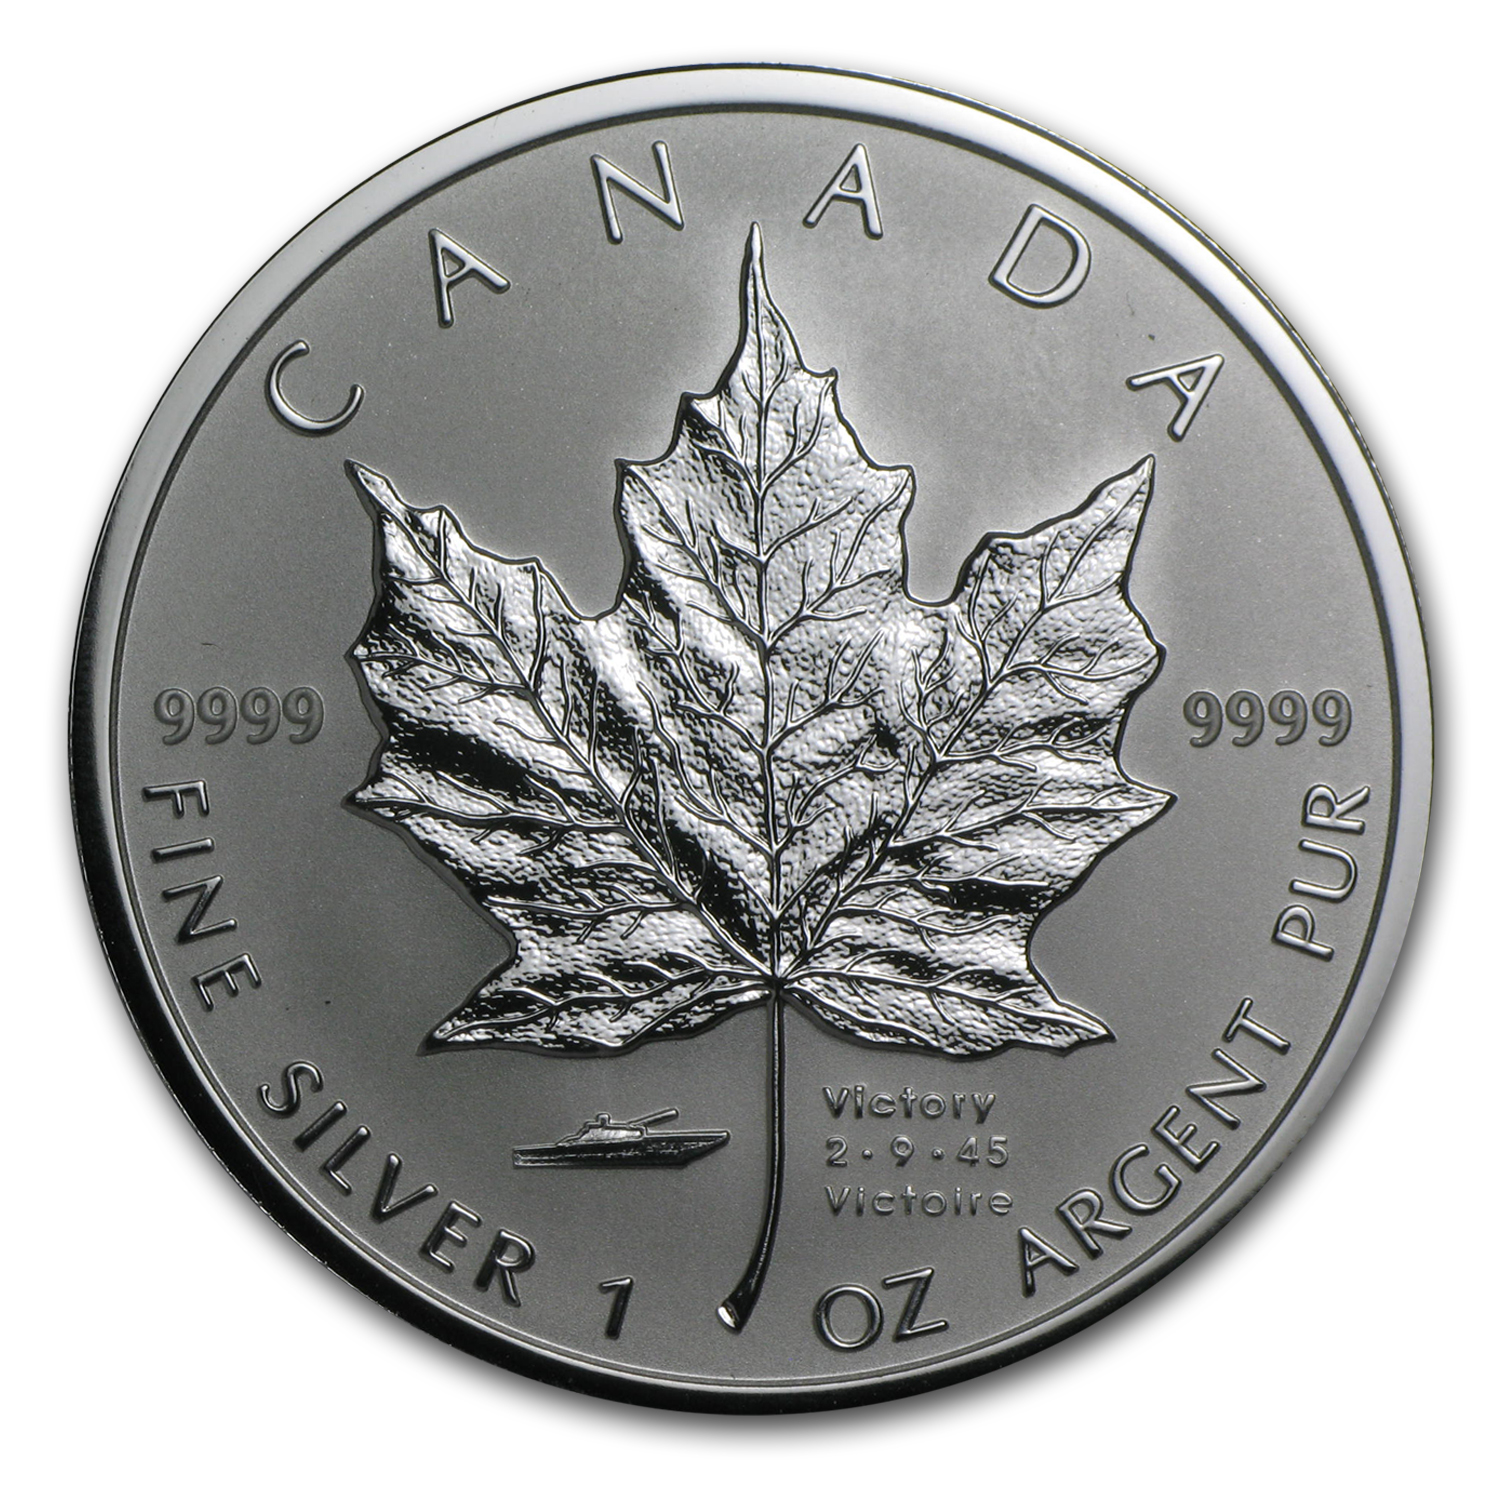 2005 Canada 1 oz Silver Maple Leaf VJ Day Privy